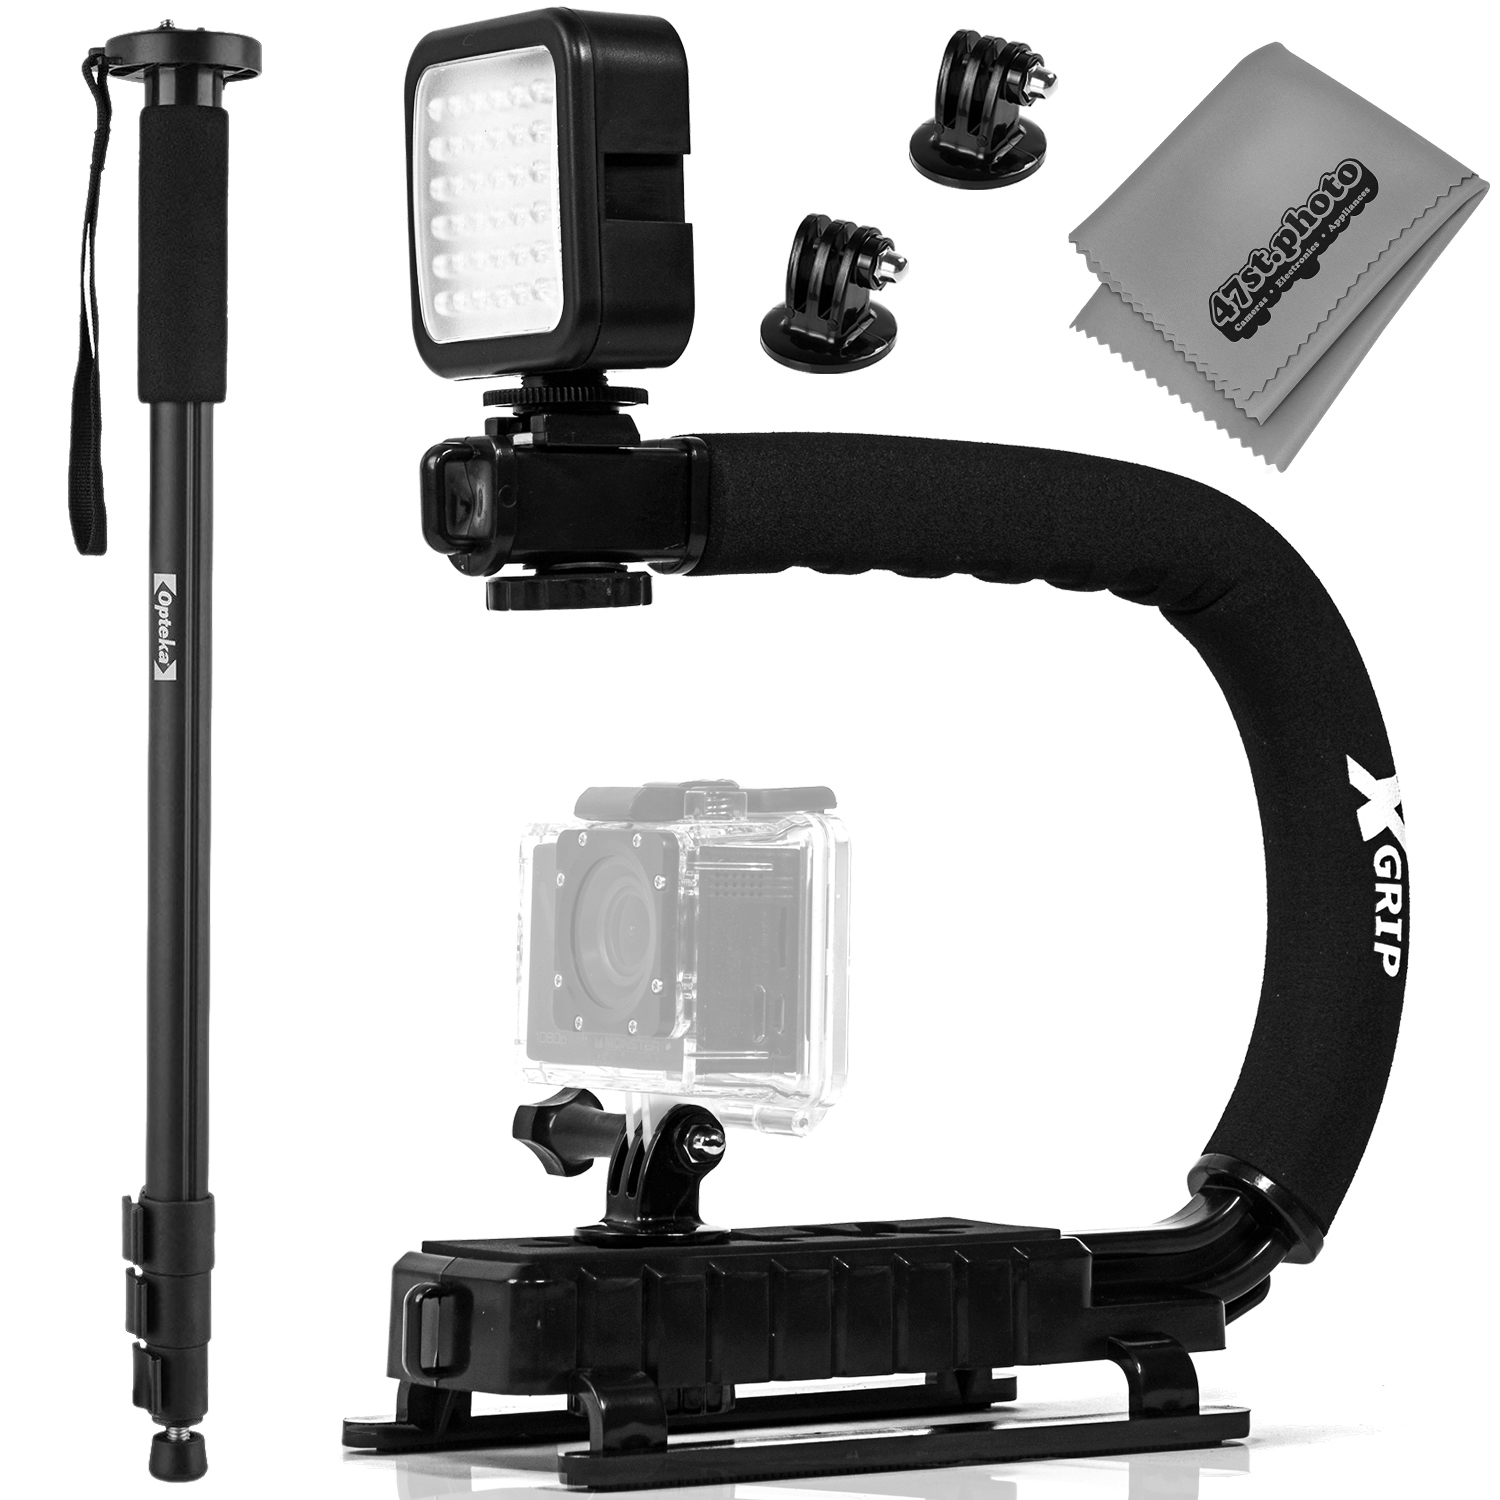 Pentax Optio S Vertical Shoe Mount Stabilizer Handle Pro Video Stabilizing Handle Grip for